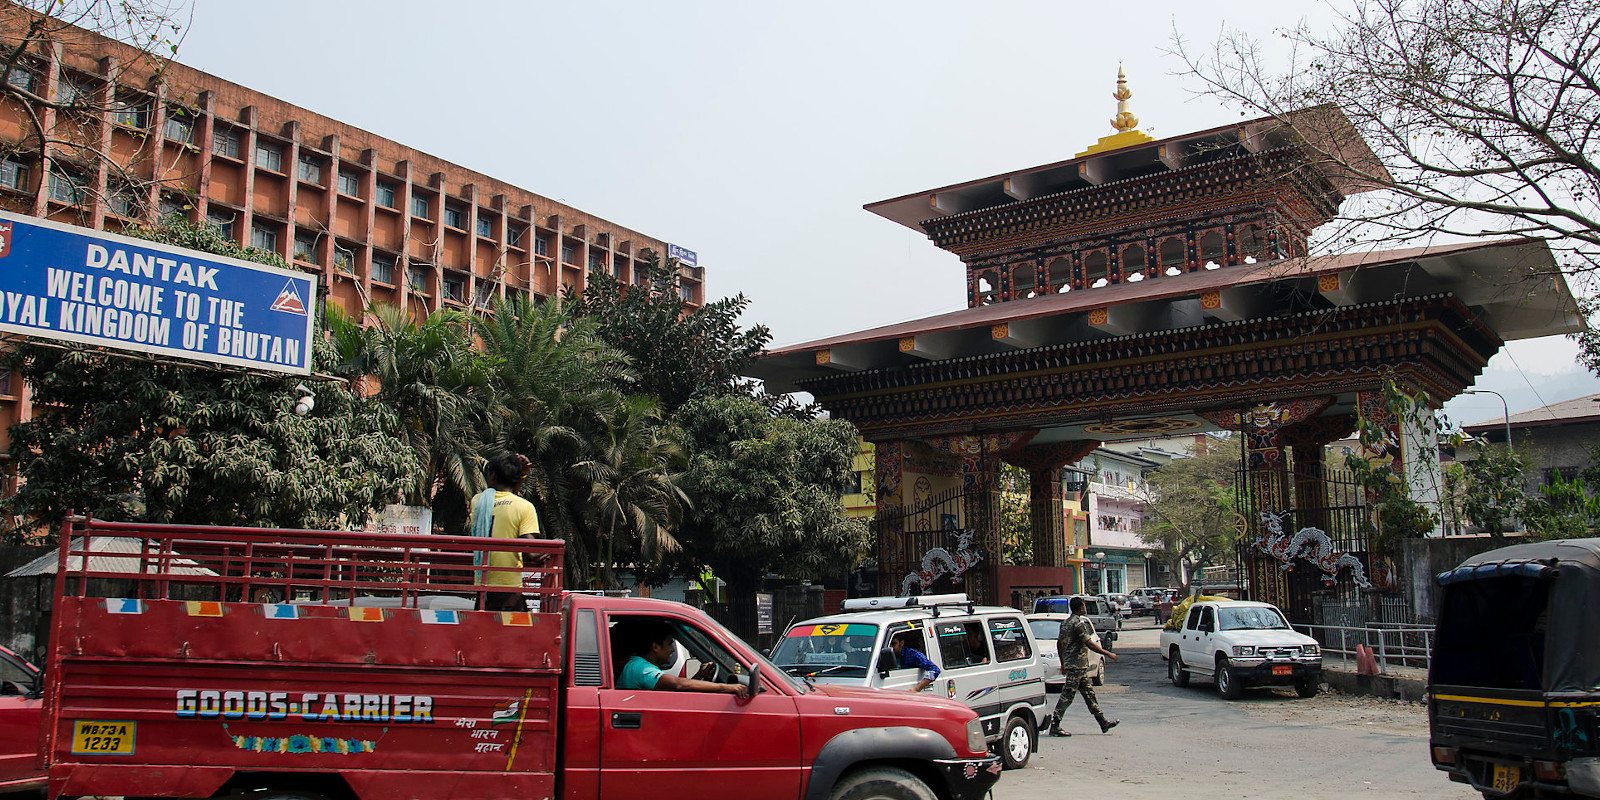 The Welcome Gate of Bhutan in Phuentsholing